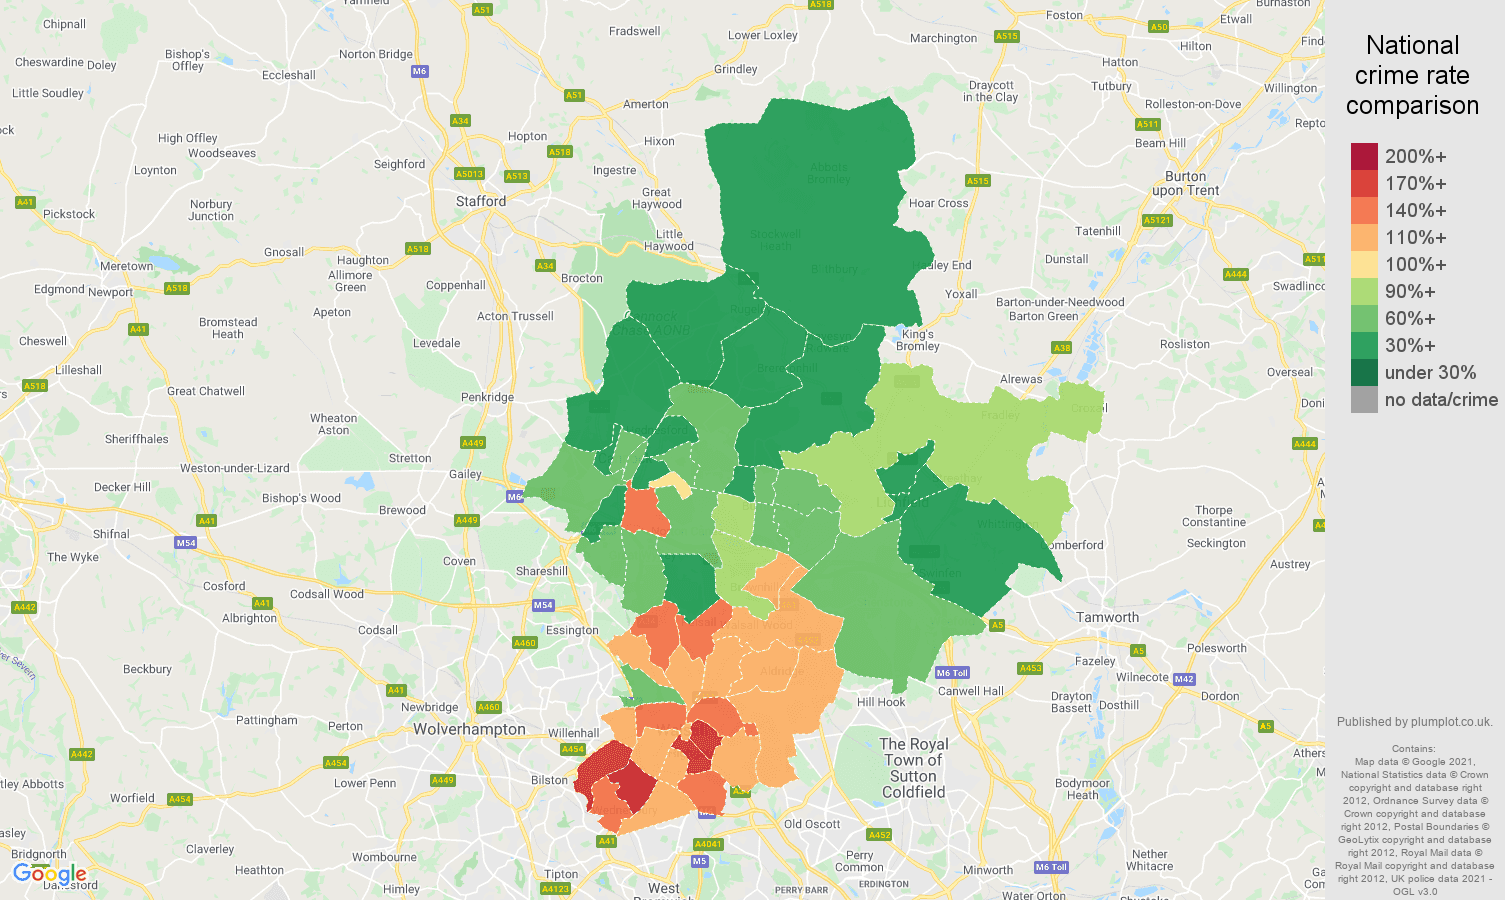 Walsall burglary crime rate comparison map